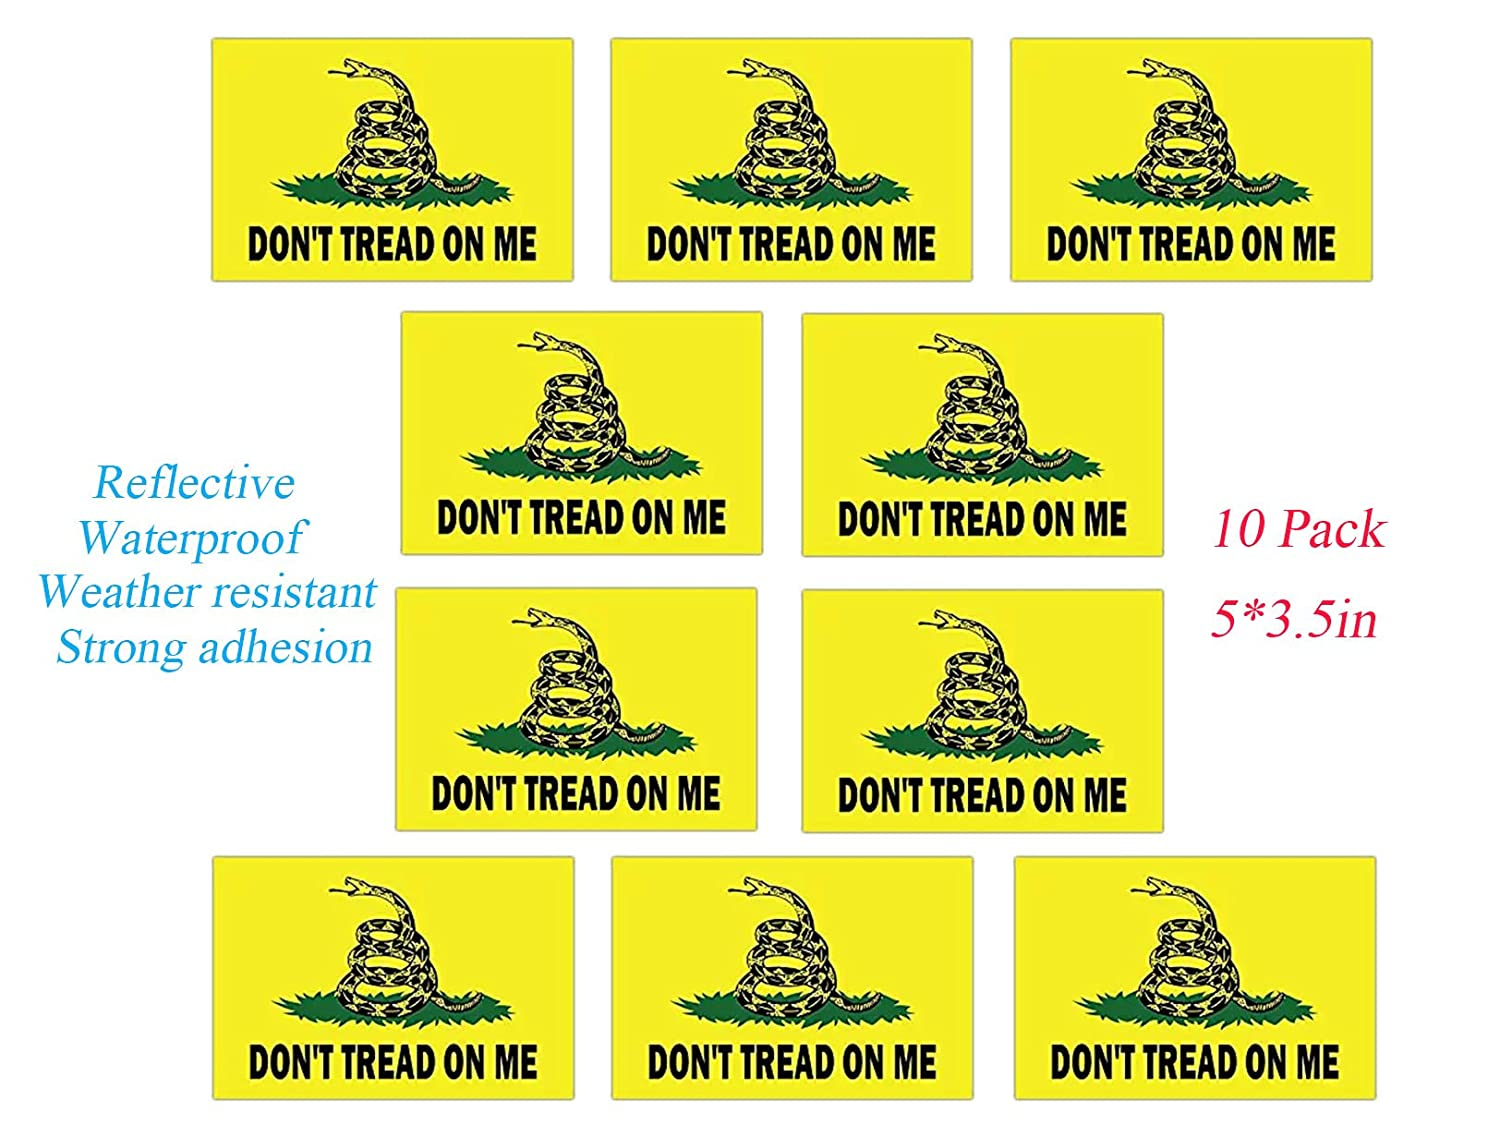 Towee reflective dont tread on me decals gadsden dont tread on me heavy duty decal stickers for car jeep suvtruck etc 5x3 5 inch